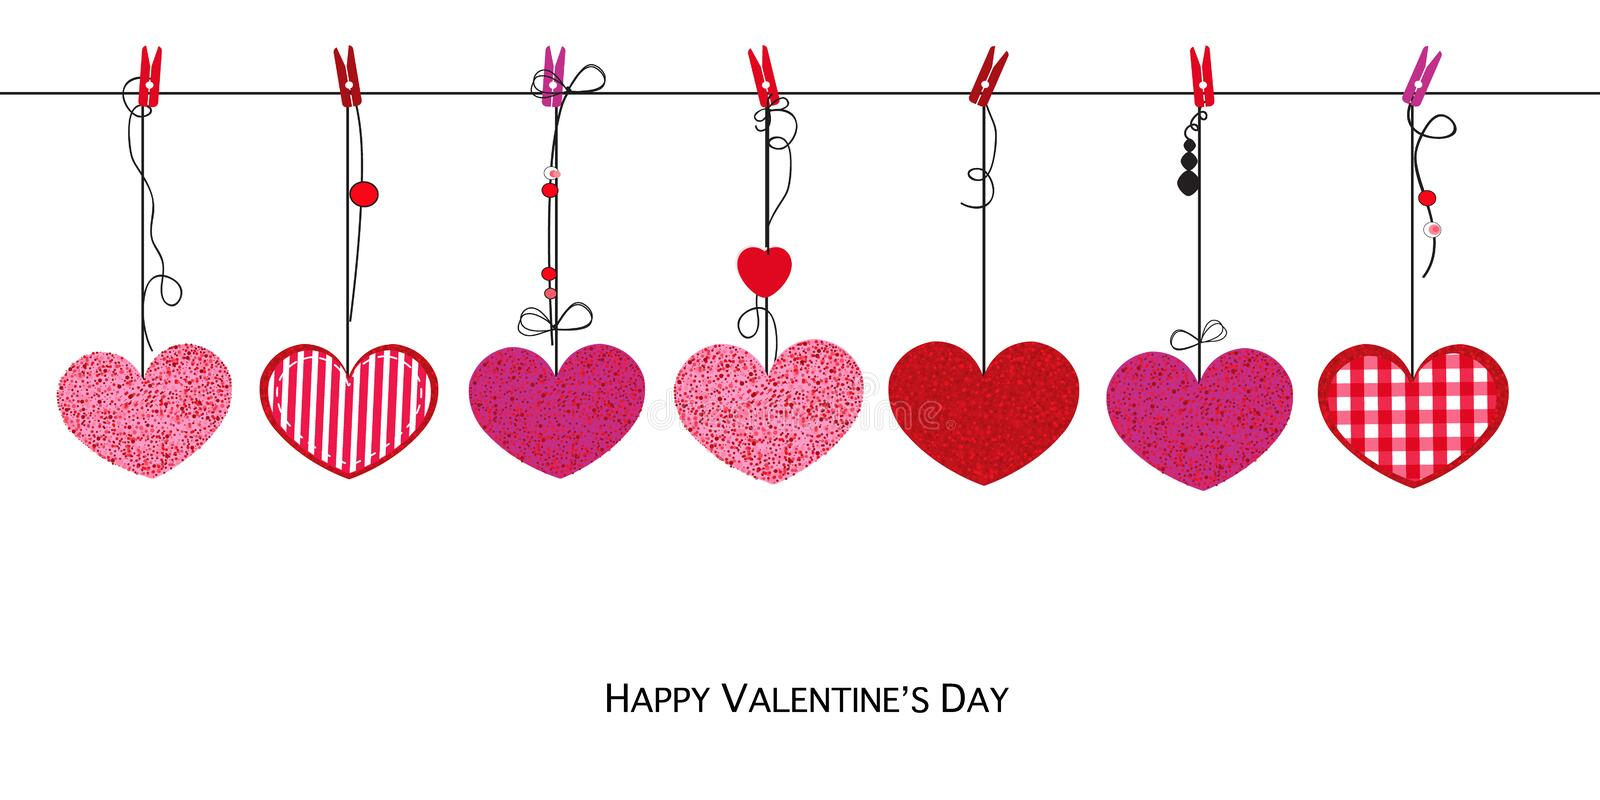 Shining pink red hearts. Happy Valentines Day card with hanging Love Valentines hearts background vector illustration